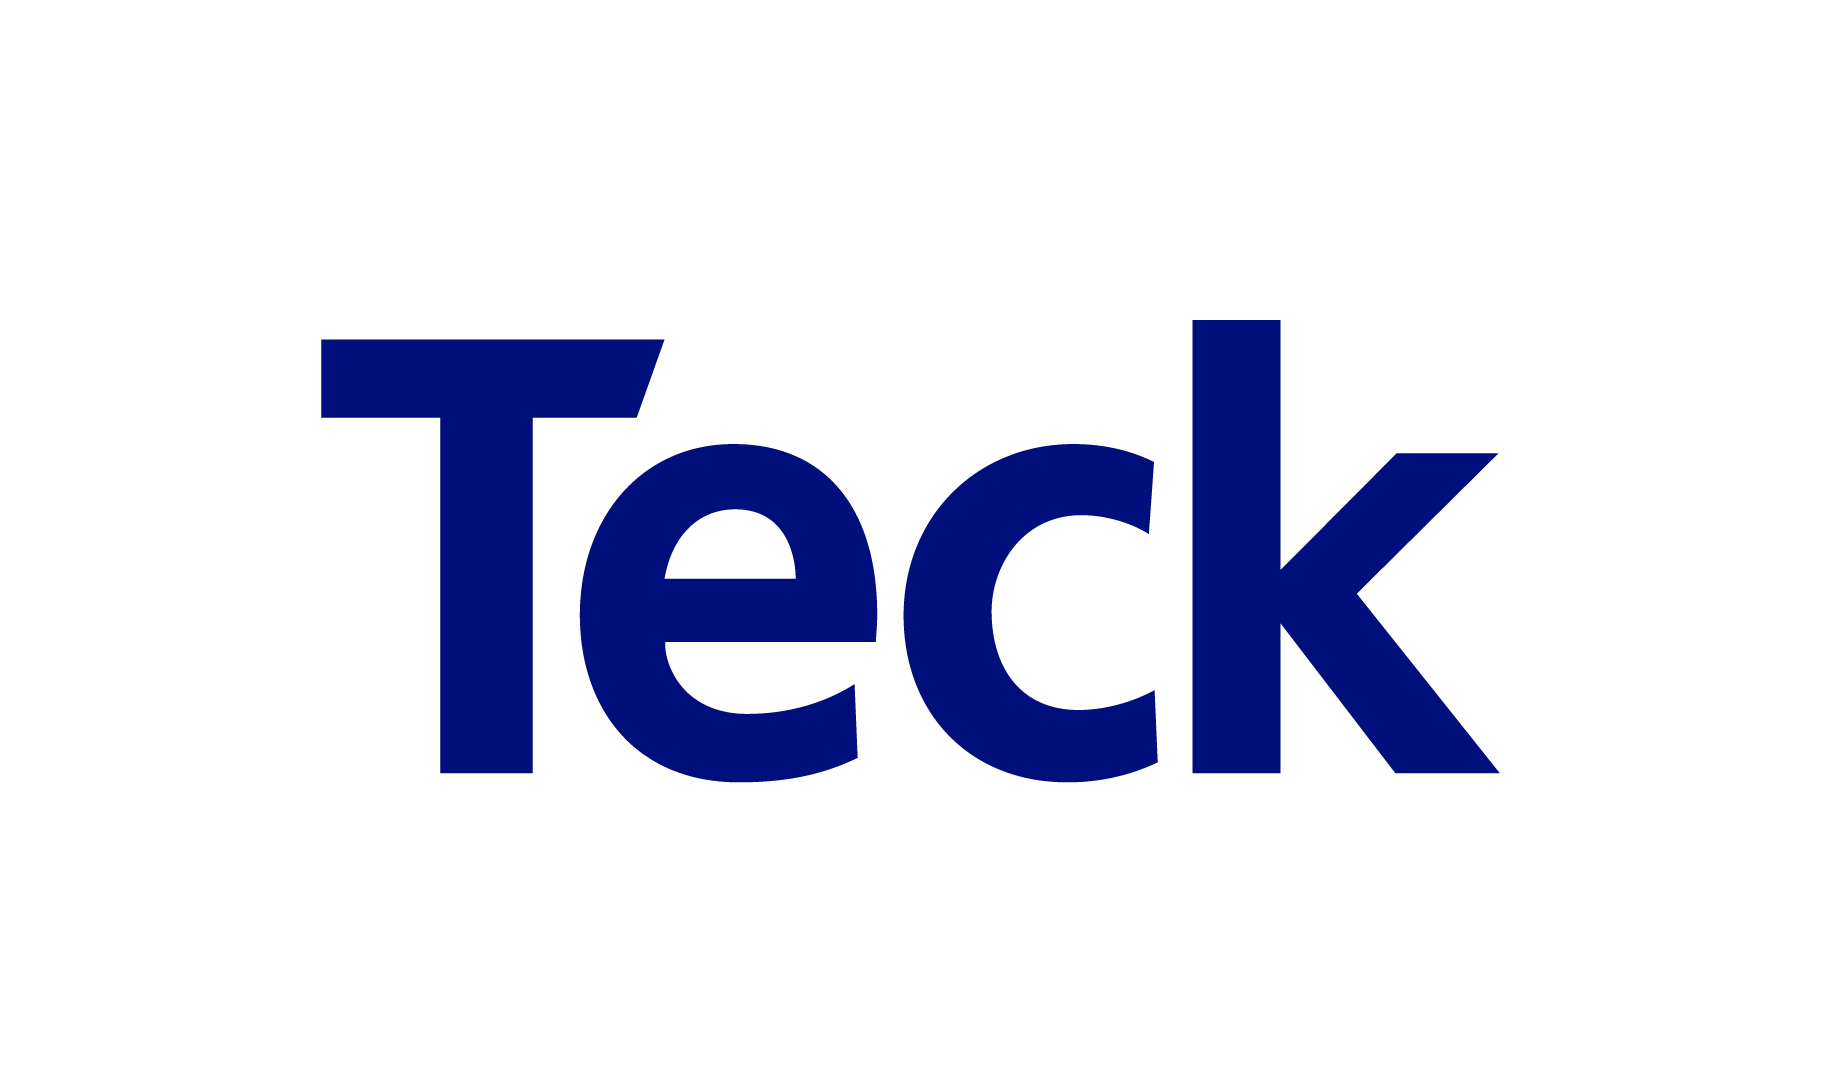 NEWEST Teck logo